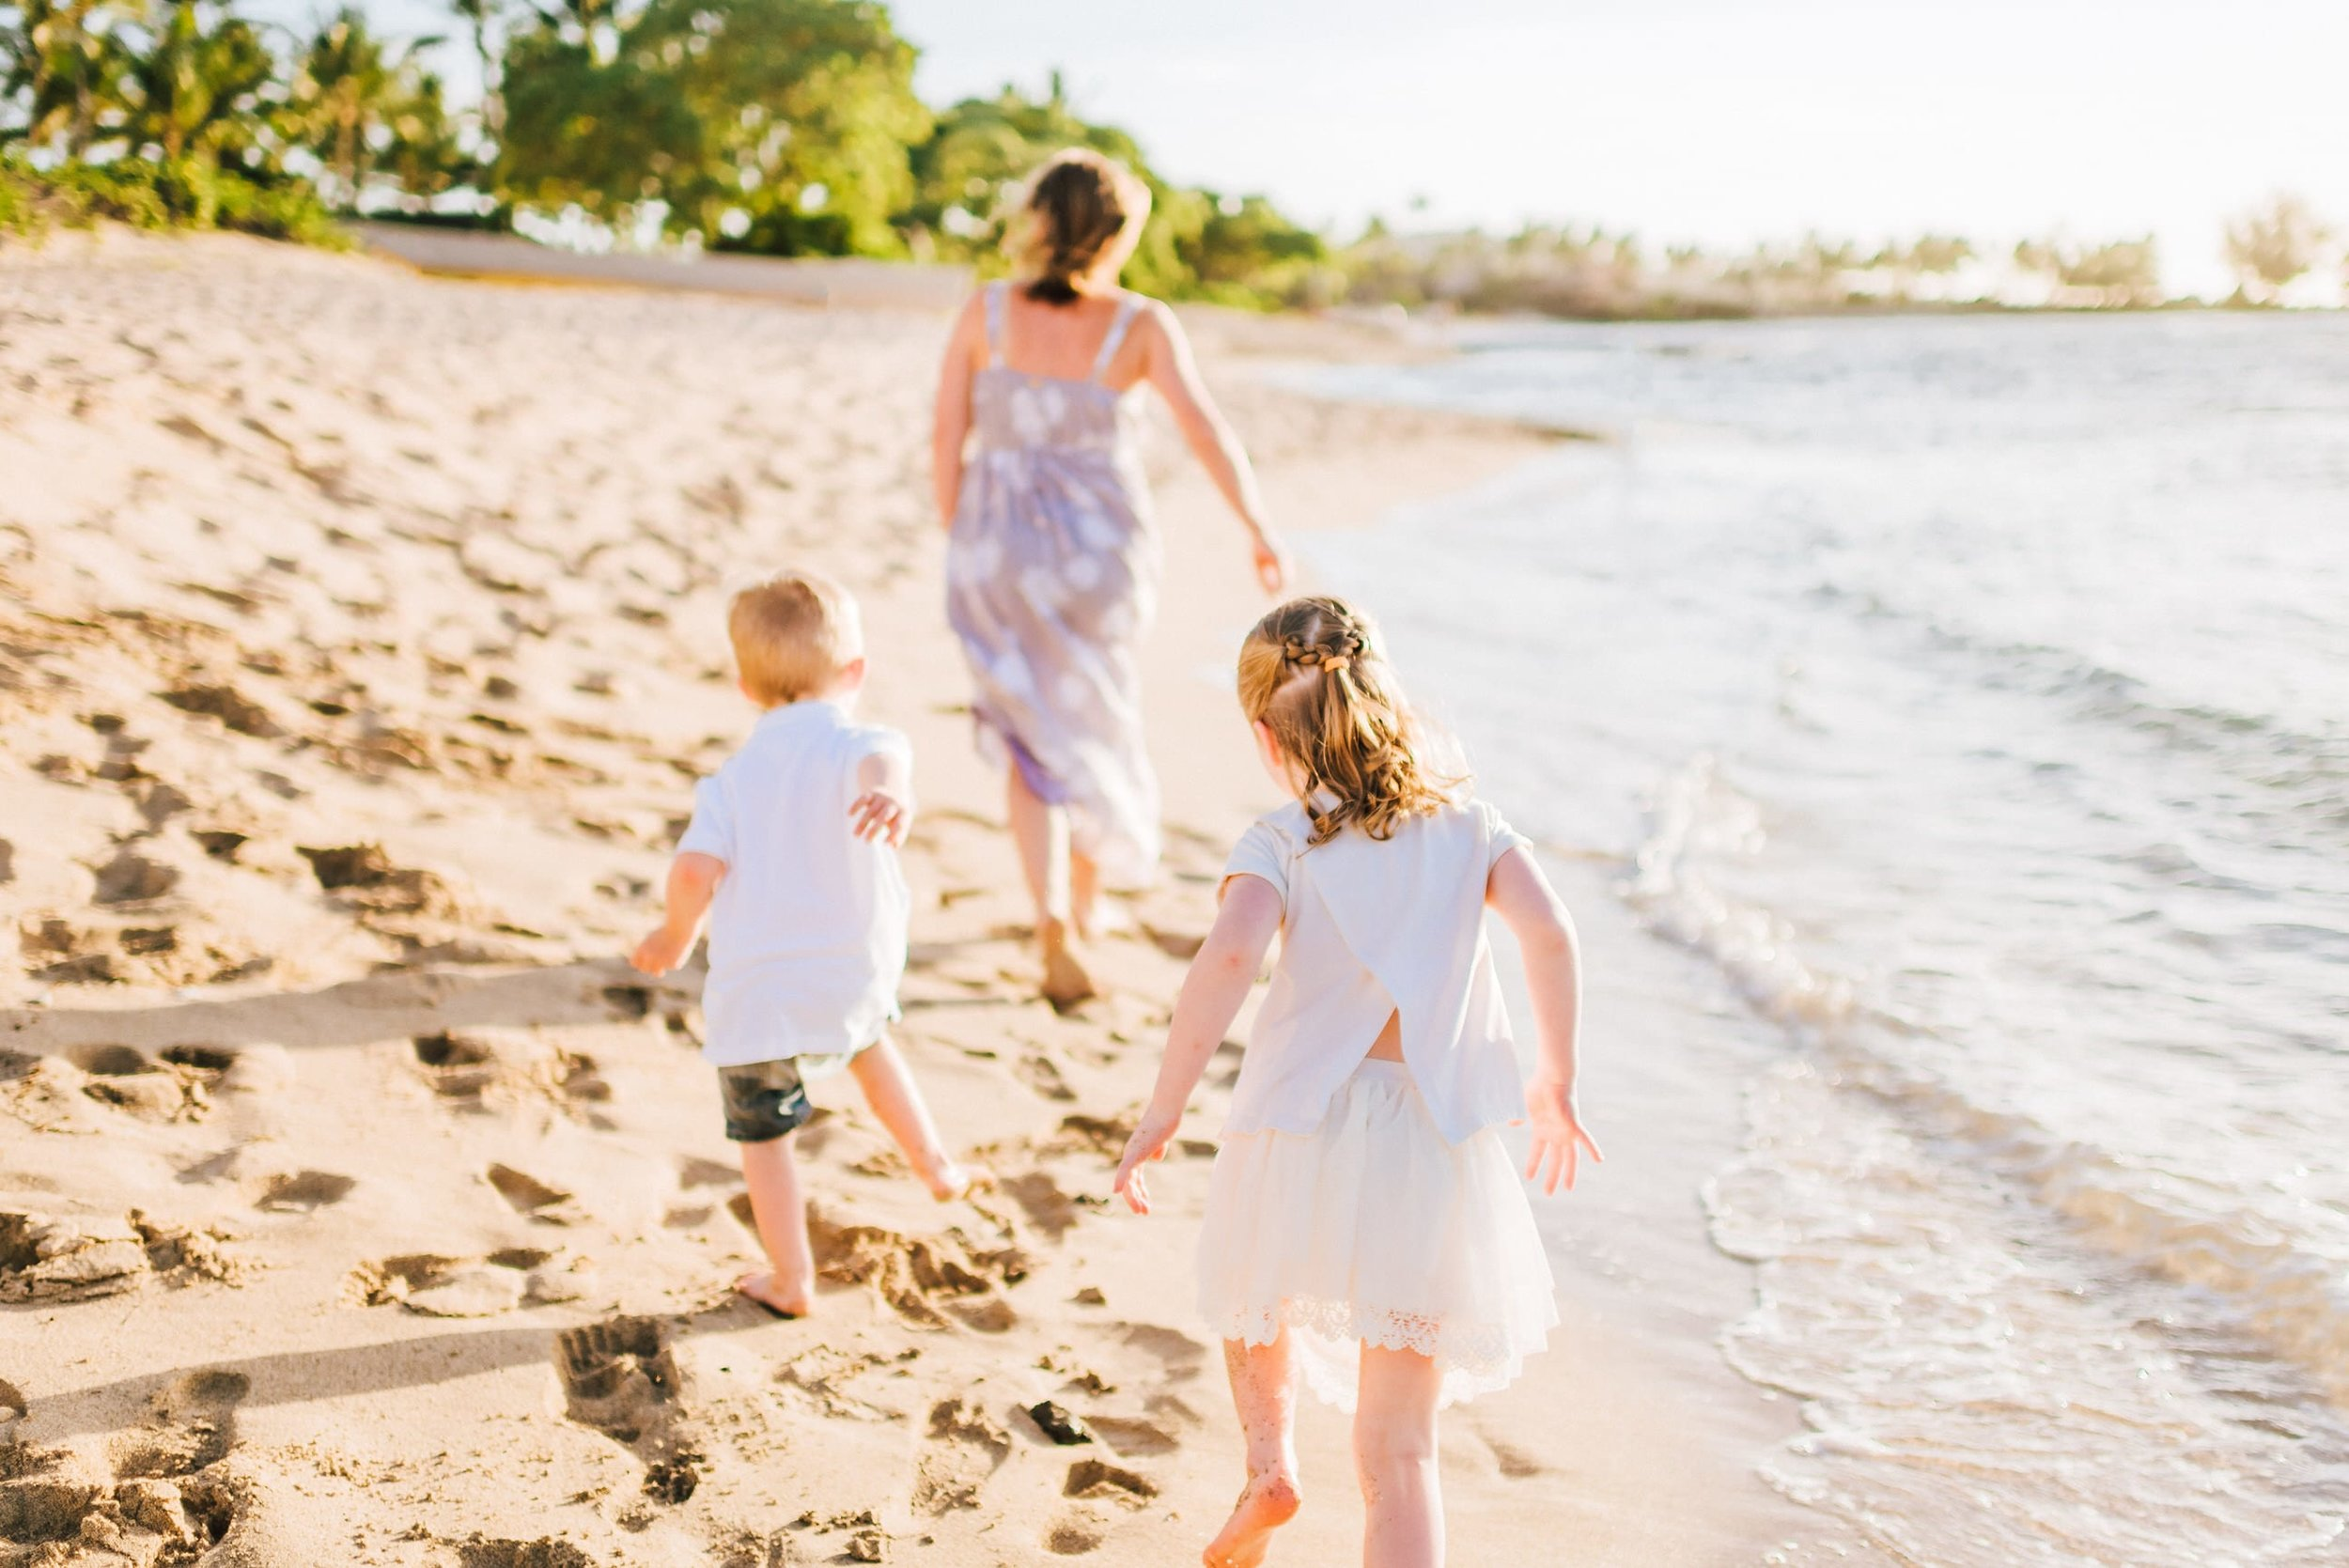 Hawaii-Family-Photos-Beach-Waikoloa-5.jpg